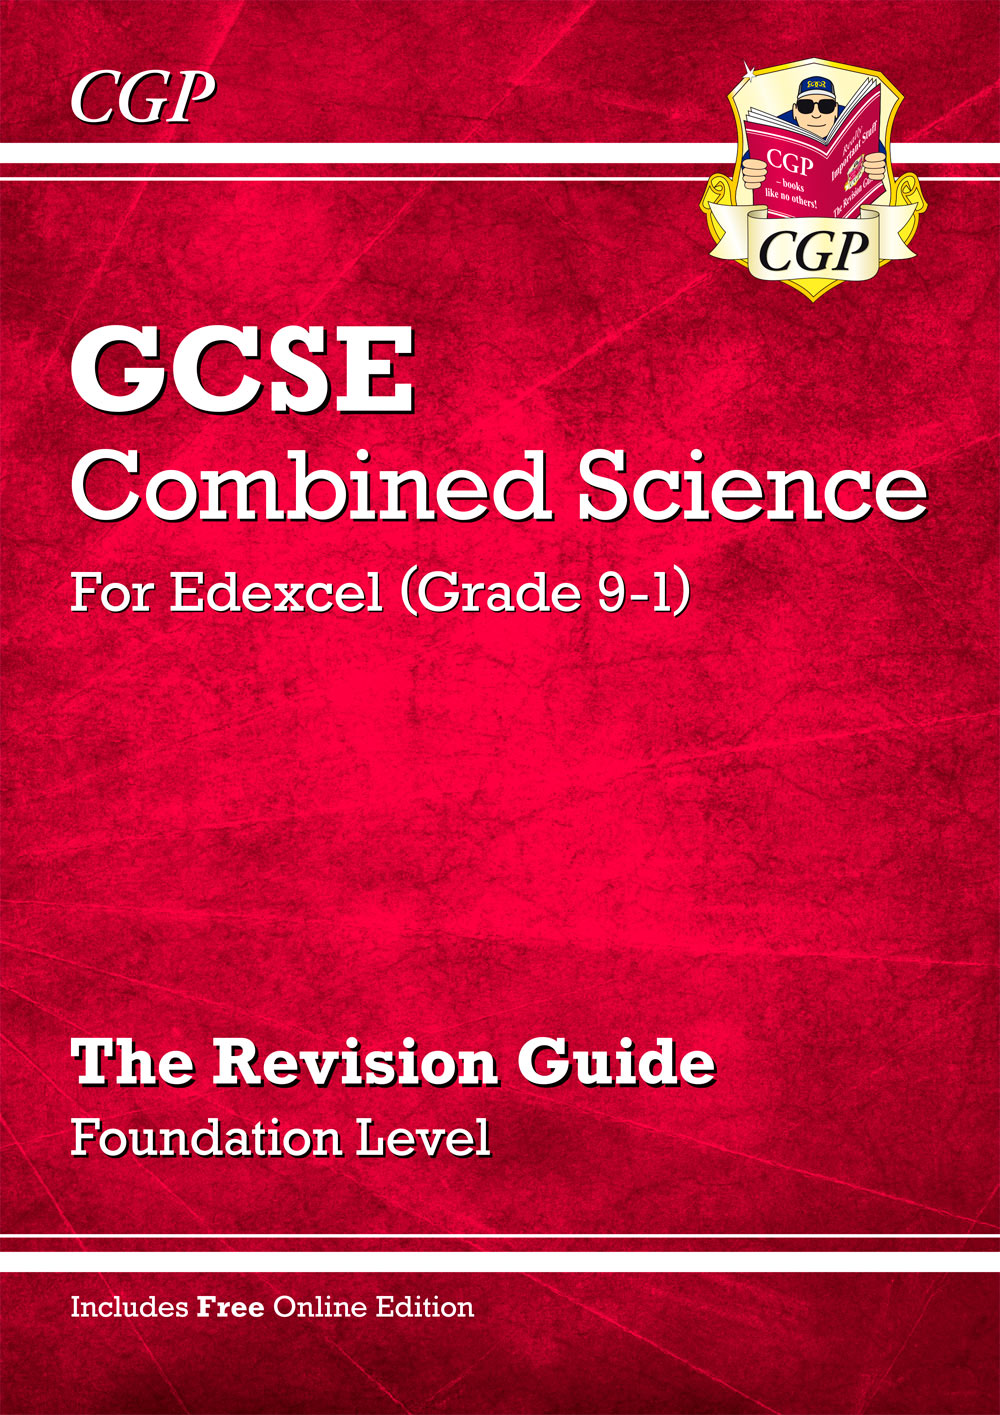 SEFR45 - Grade 9-1 GCSE Combined Science: Edexcel Revision Guide with Online Edition - Foundation